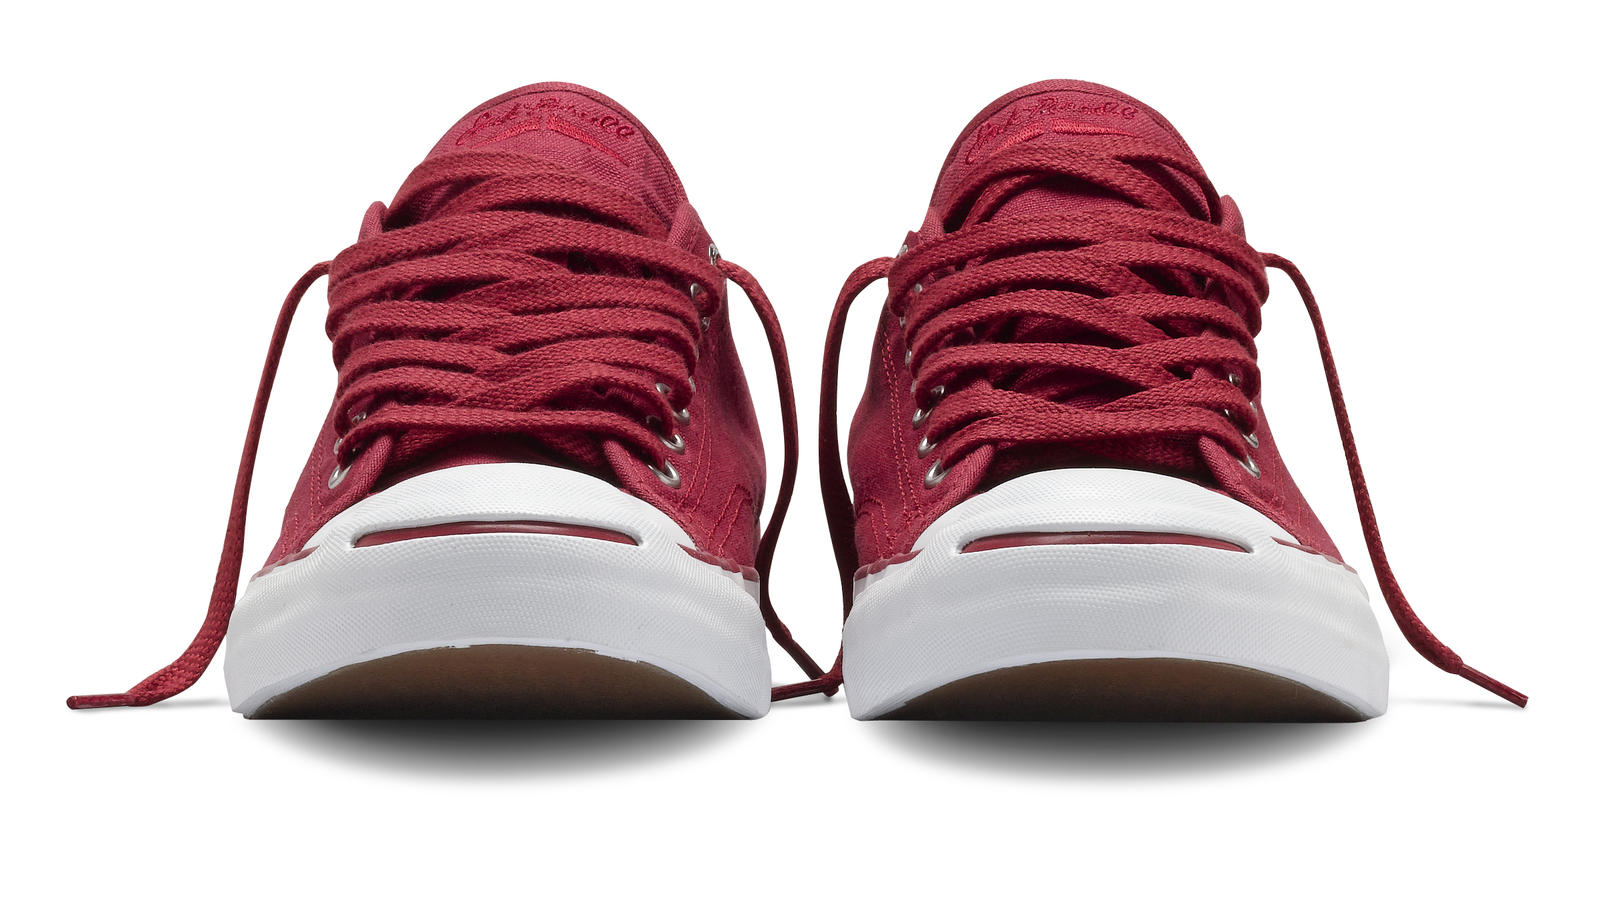 2c9fcf347c5d Introducing the Summer 2012 Undefeated For Converse Jack Purcell ...